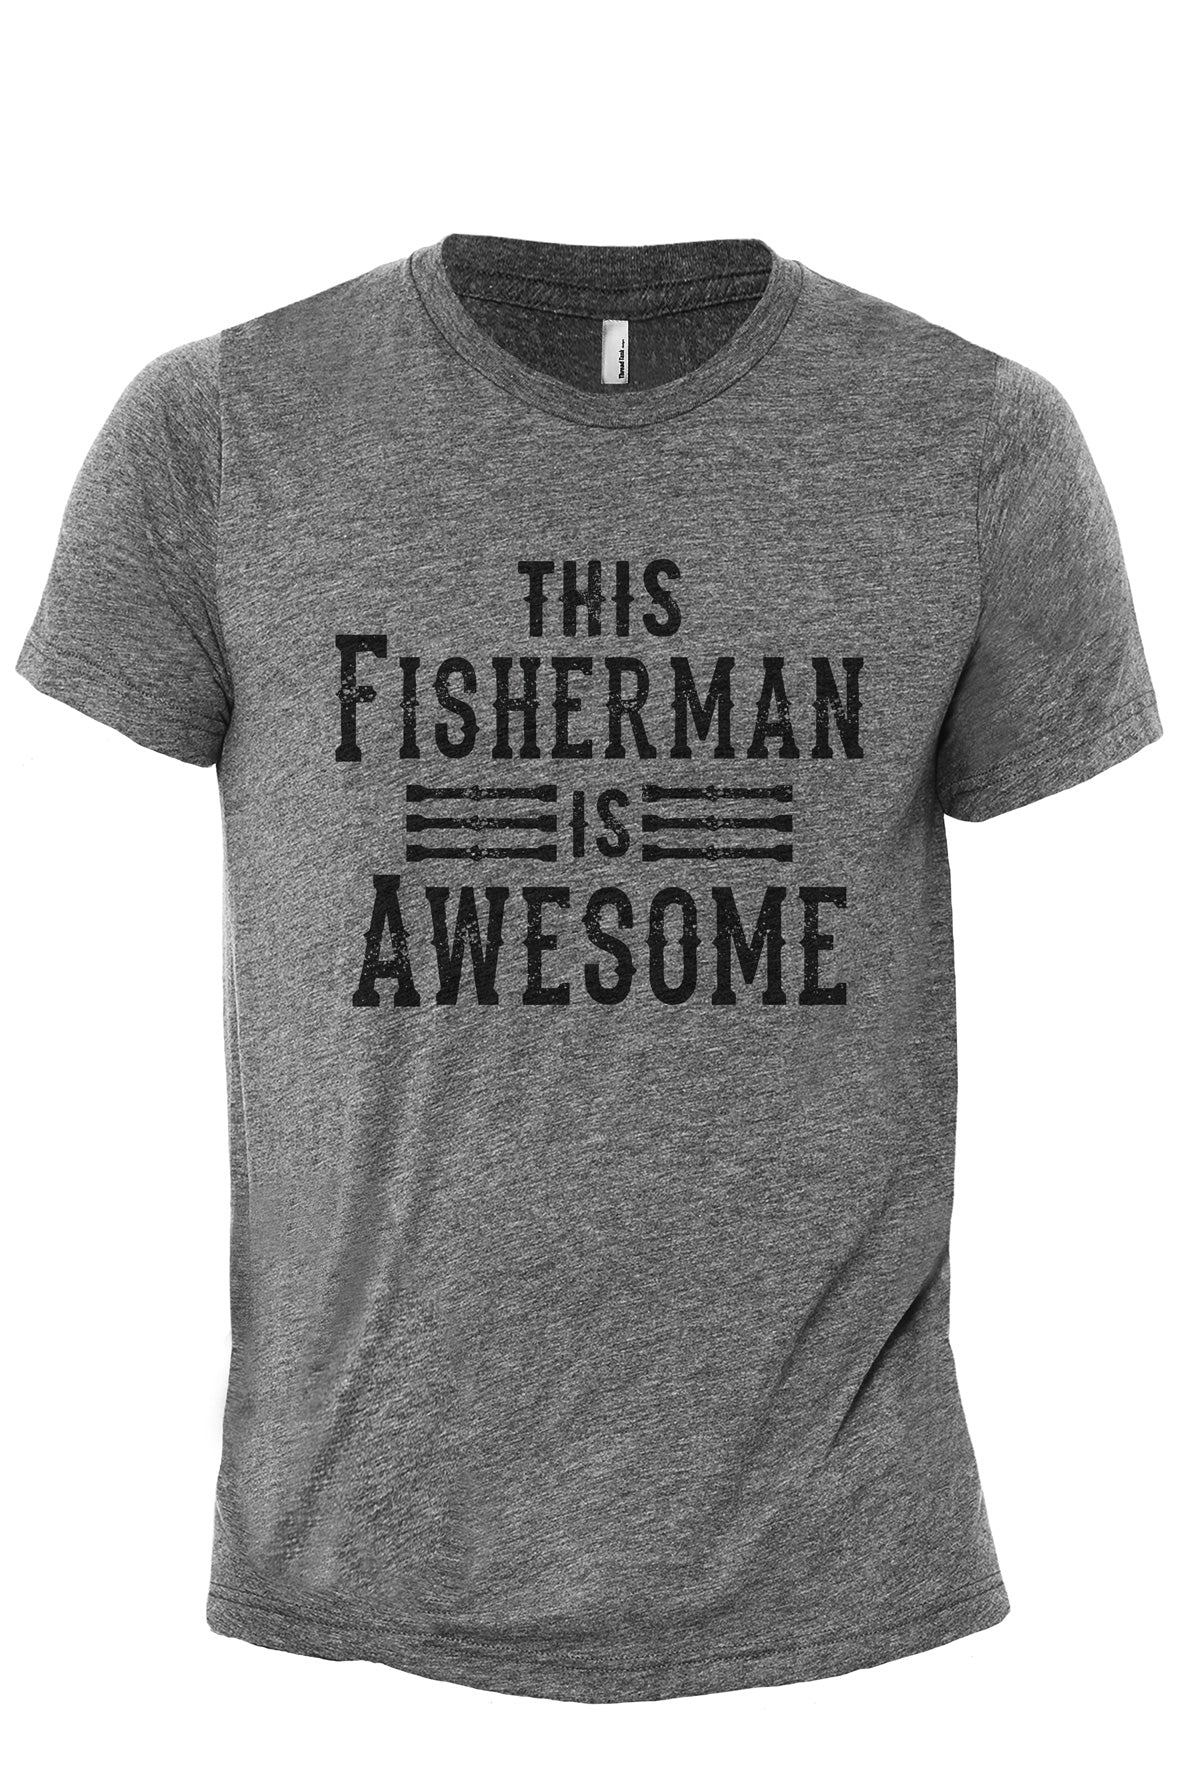 This Fisherman Is Awesome Heather Grey Printed Graphic Men's Crew T-Shirt Tee